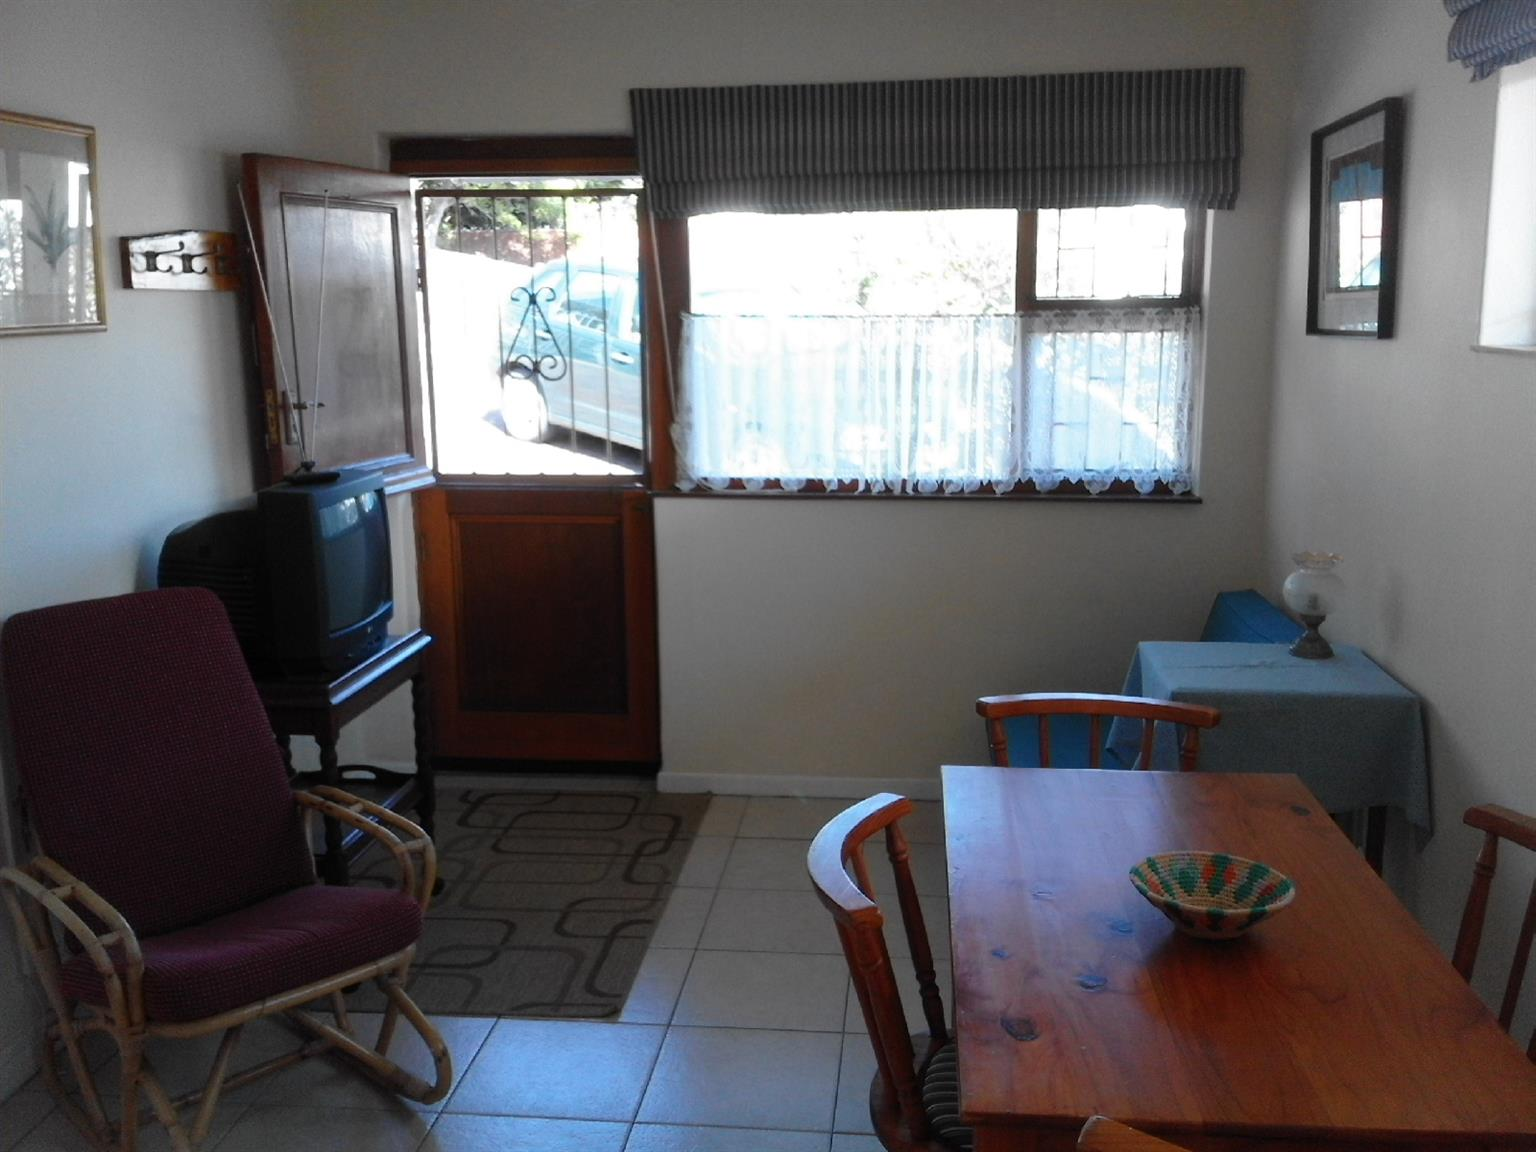 Cottage/apartment in quiet area on the Fish Hoek mountainside